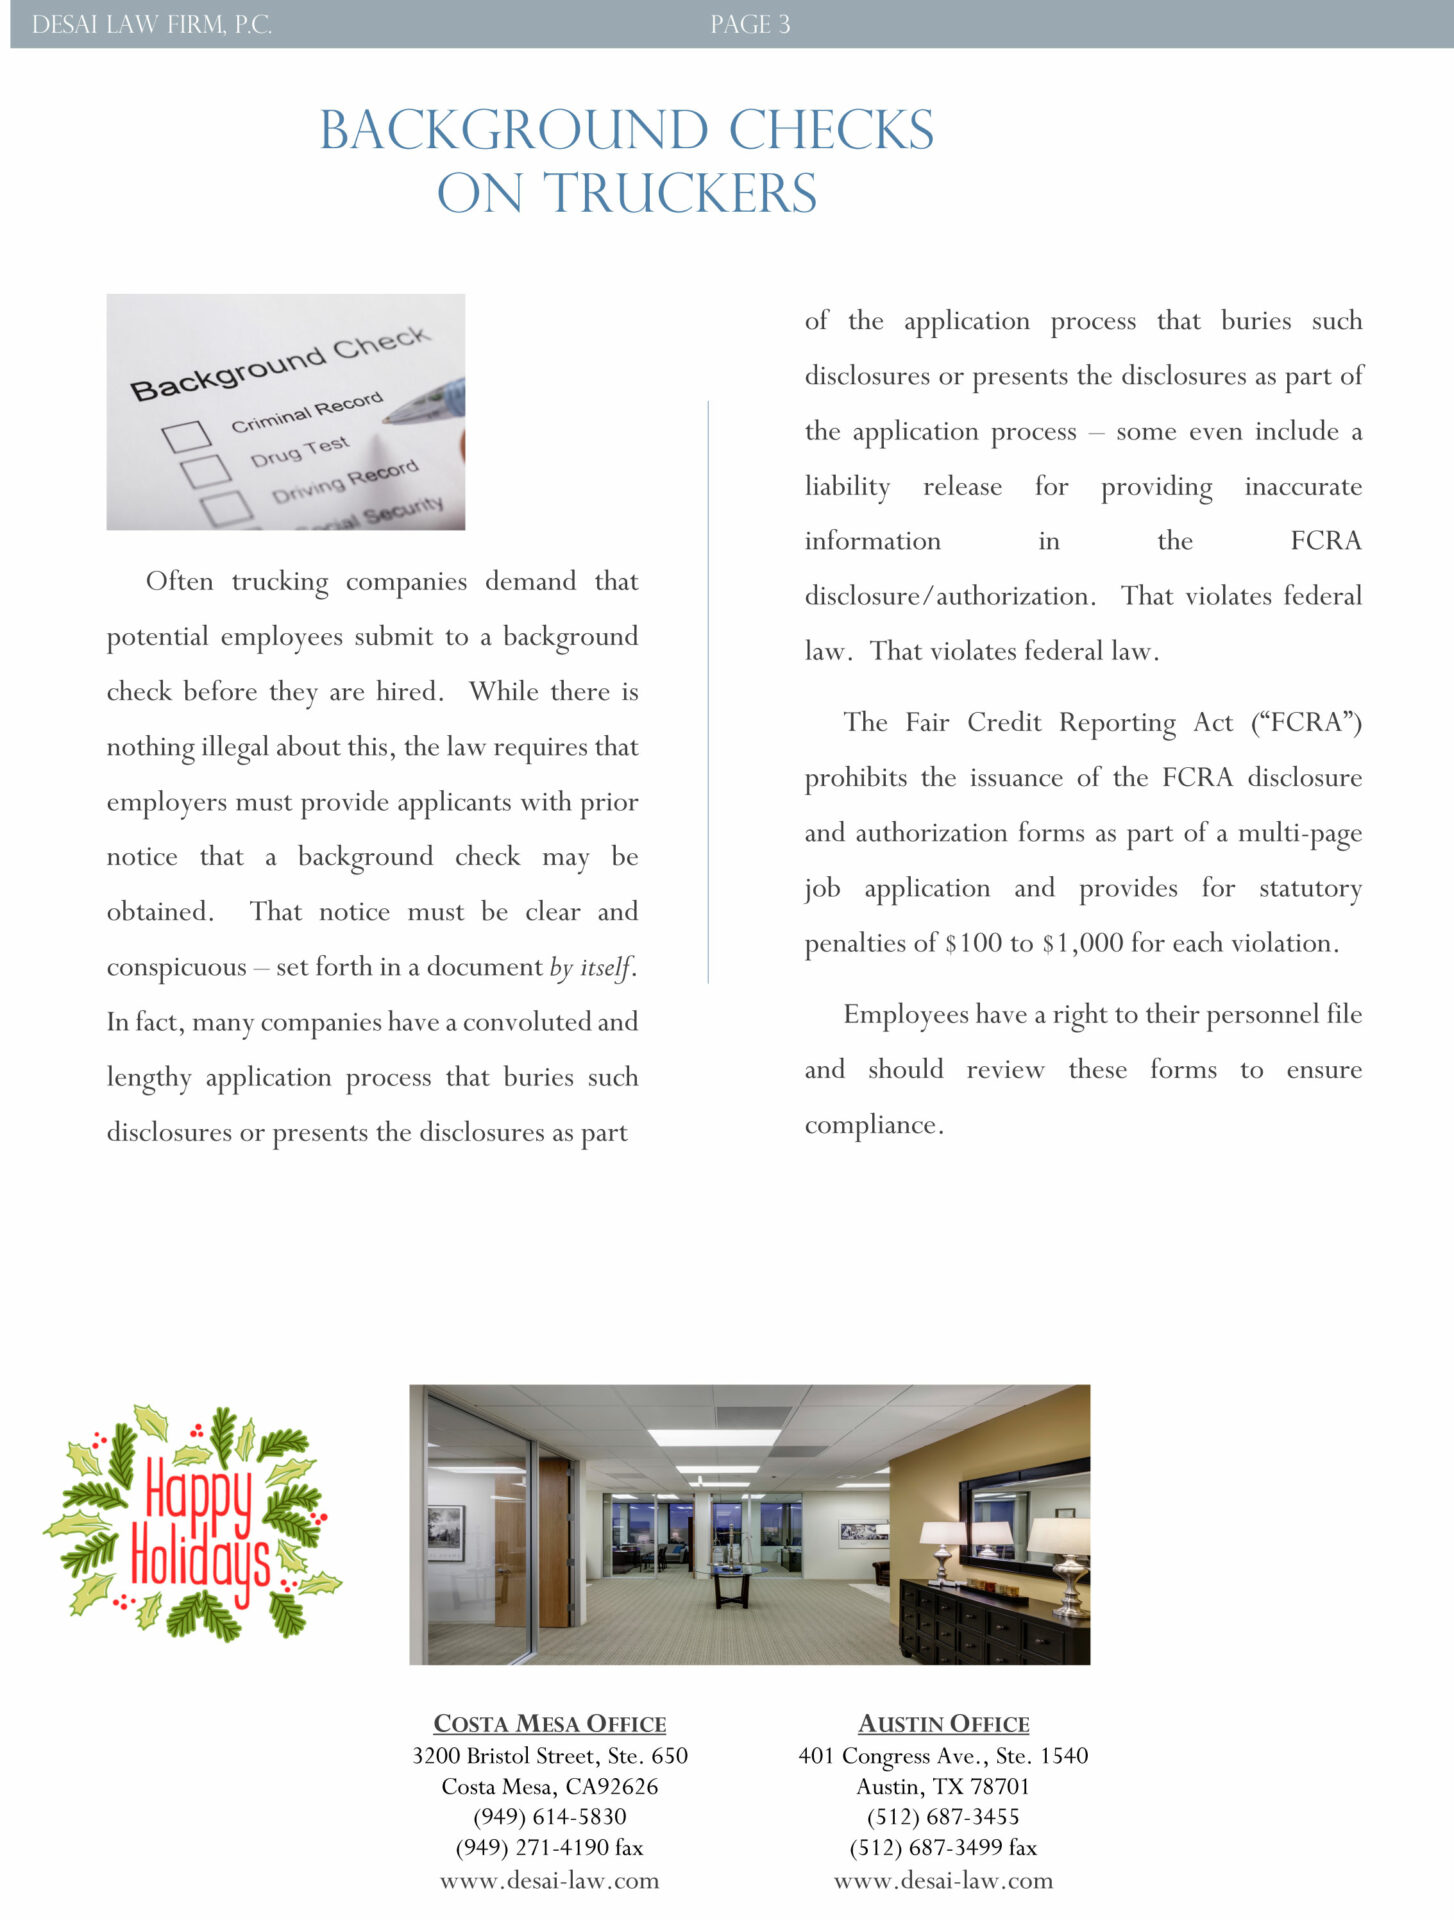 Newsletter---Issue-4-Holidays-3